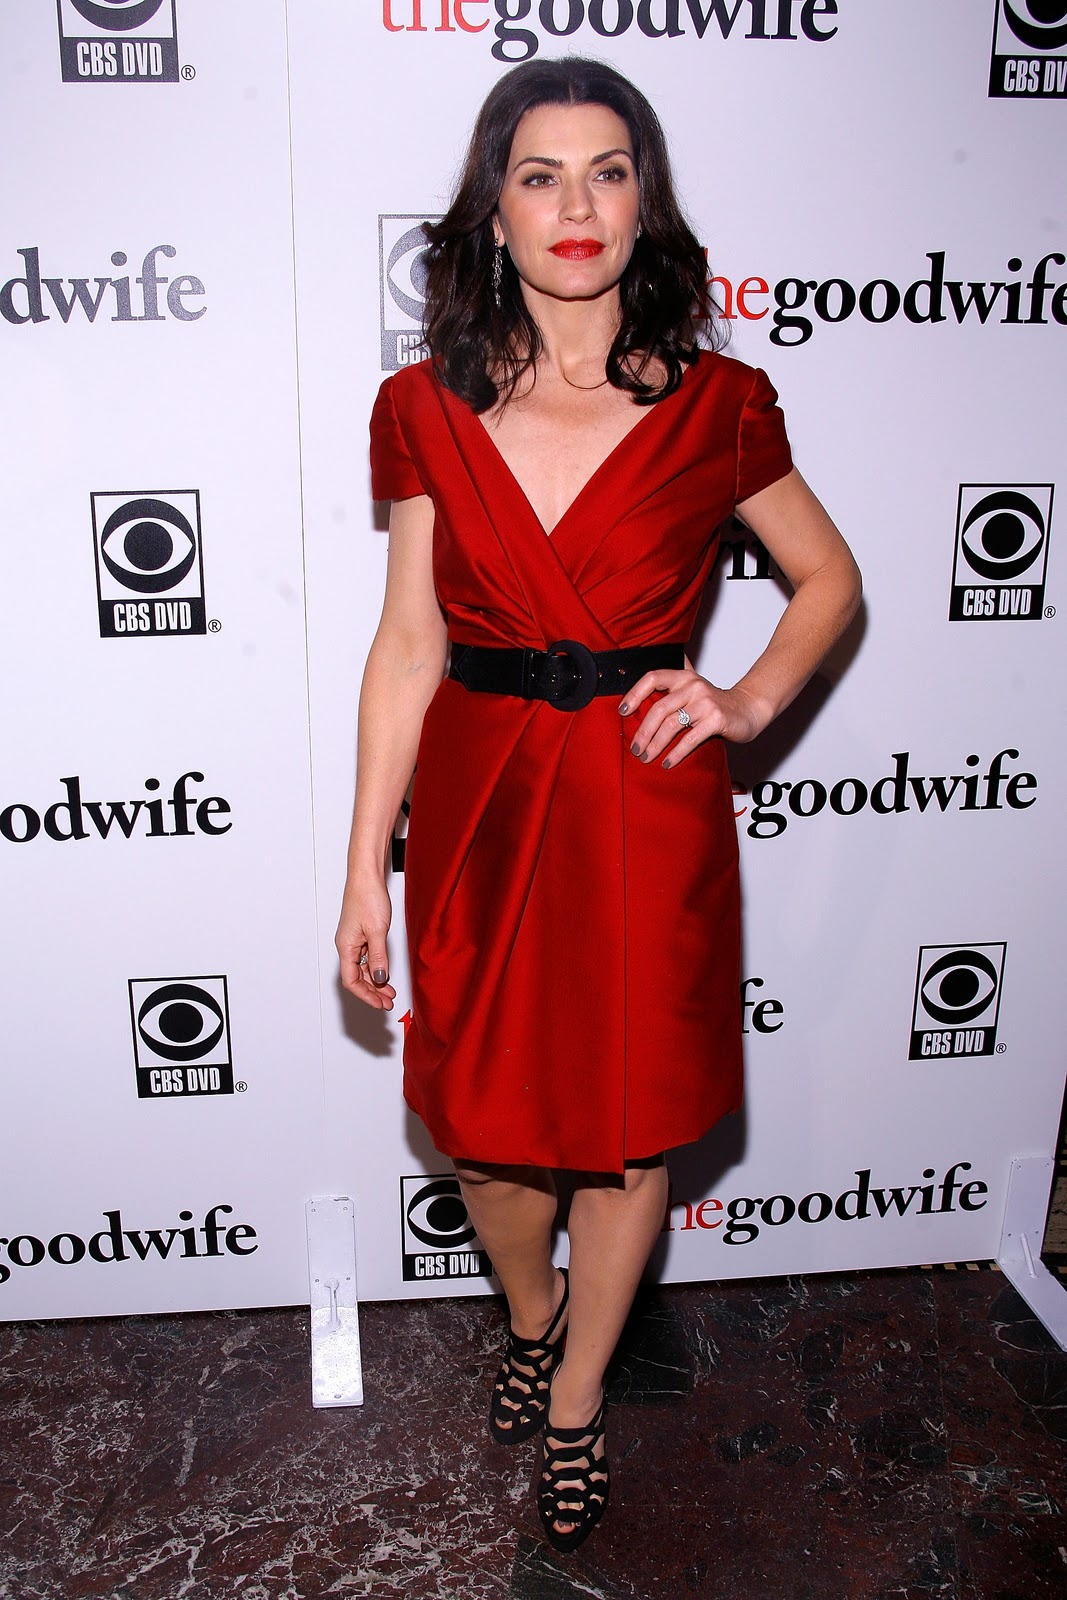 http://3.bp.blogspot.com/_te_-NCYOffc/TKtq39u52YI/AAAAAAAADMk/Y4YYe7SViKU/s1600/Julianna-Margulies-The-Good-Wife-2.jpg